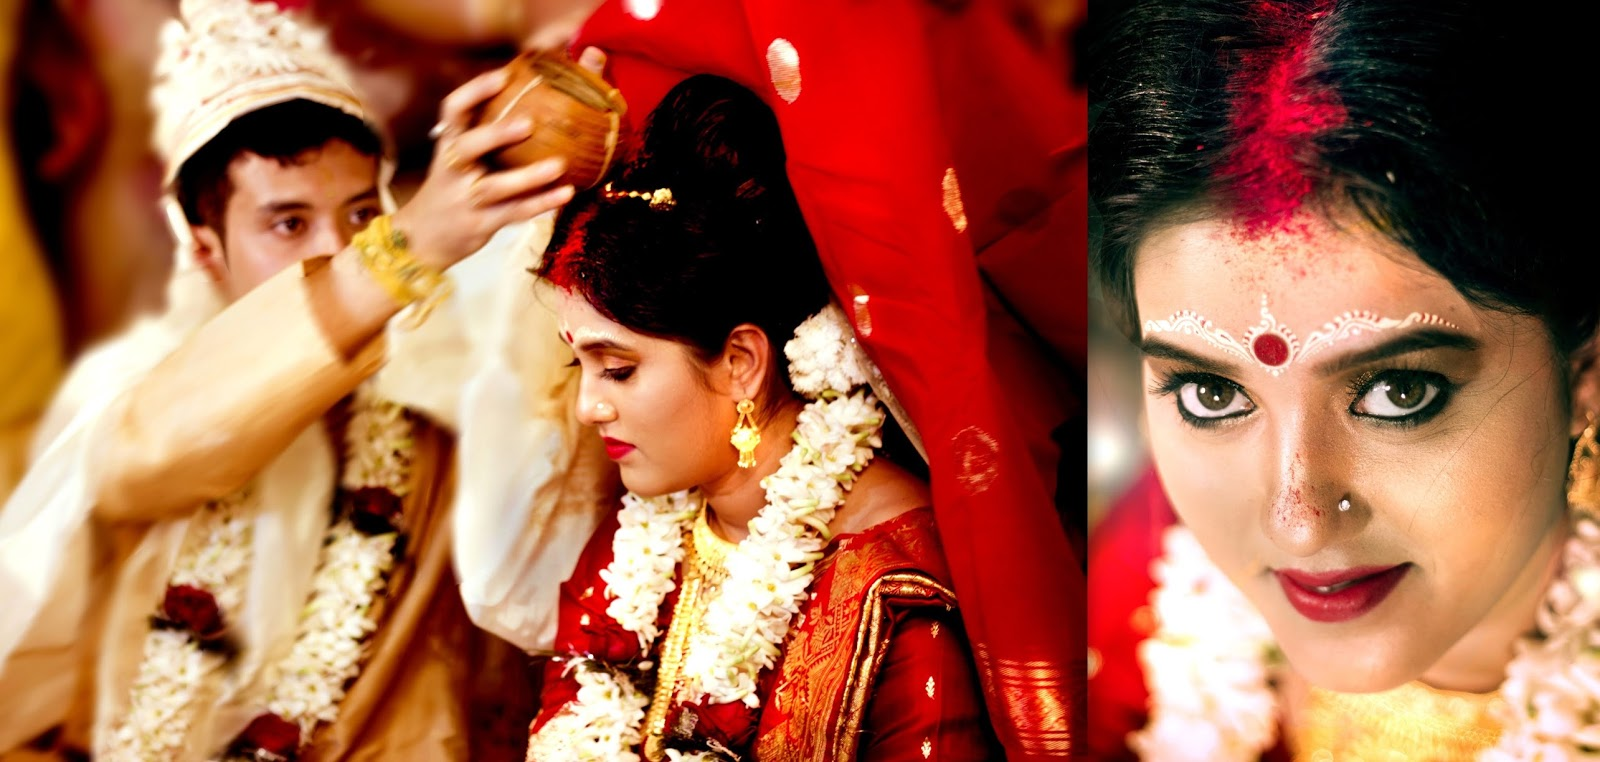 every phase of wedding includes number of ceremonies that are accomplished by their purohits pr wedding rituals usually include the traditional ashirbaad